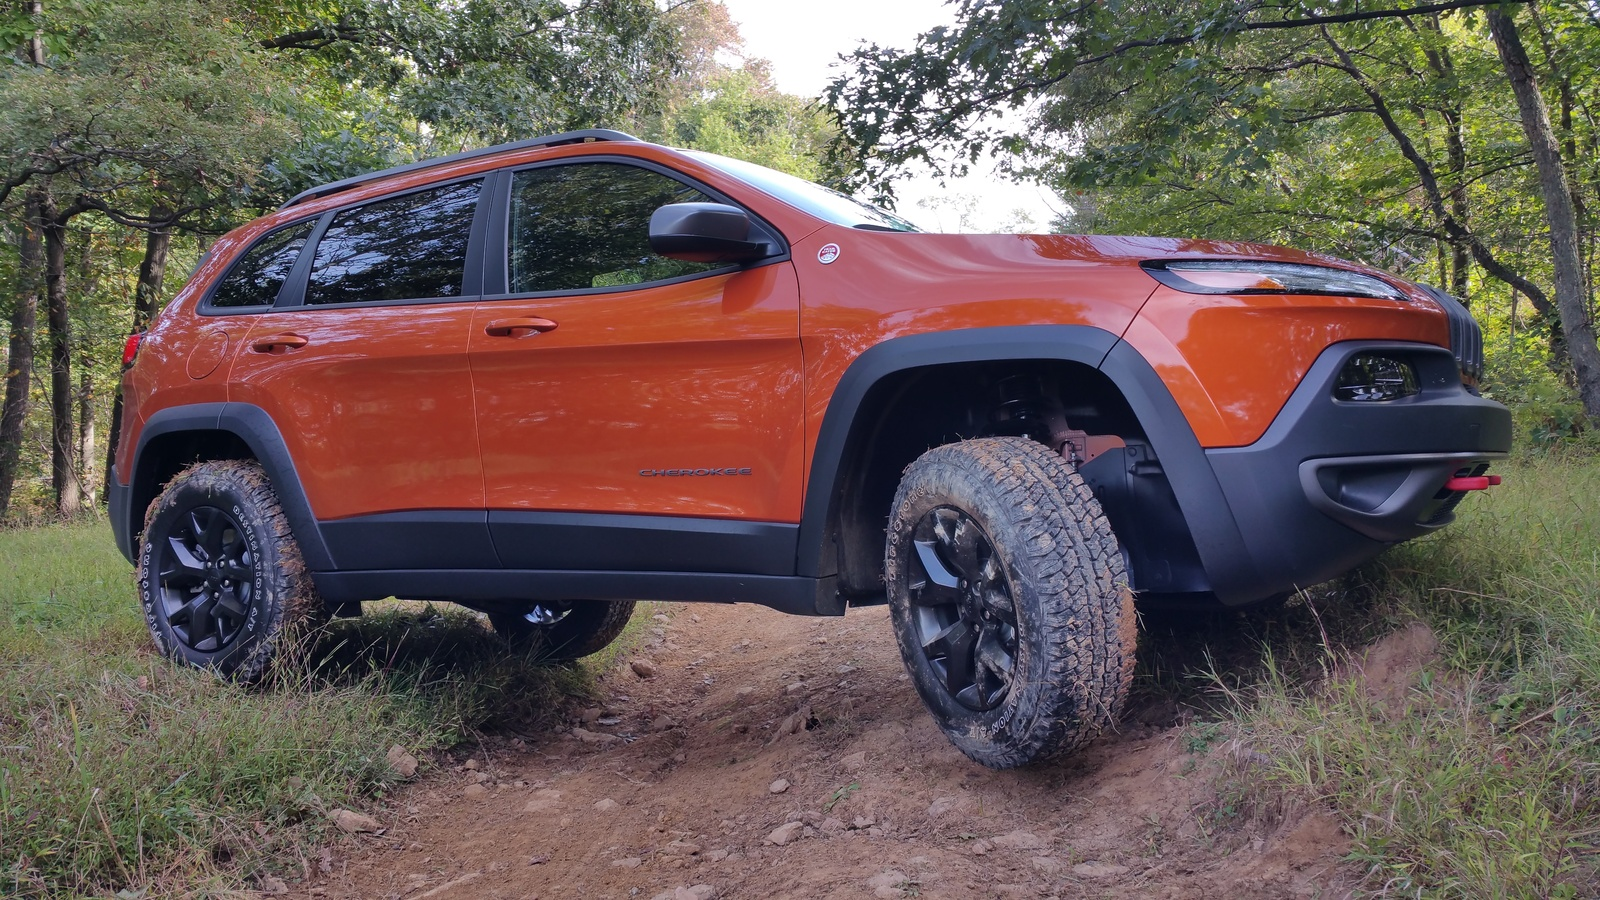 Jeep Cherokee Questions Problems With 2015 Trail 7294 Alternator Wiring Question Offroad Forums Discussion Hawk Transmission And Electrica Cargurus